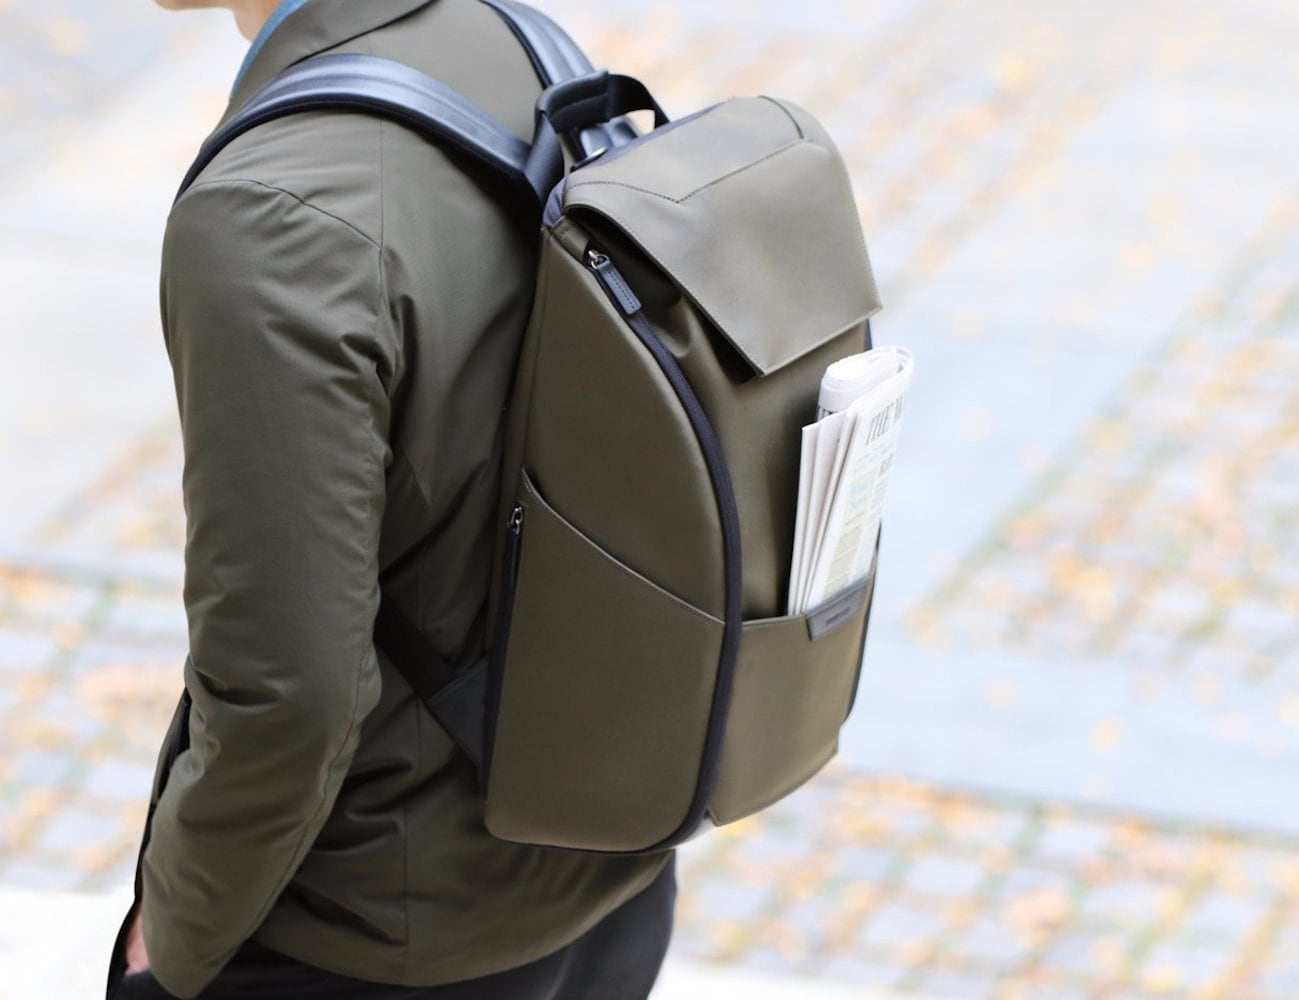 Stuart & Lau Capstone Lightweight Waterproof Backpack has a secure spot for everything